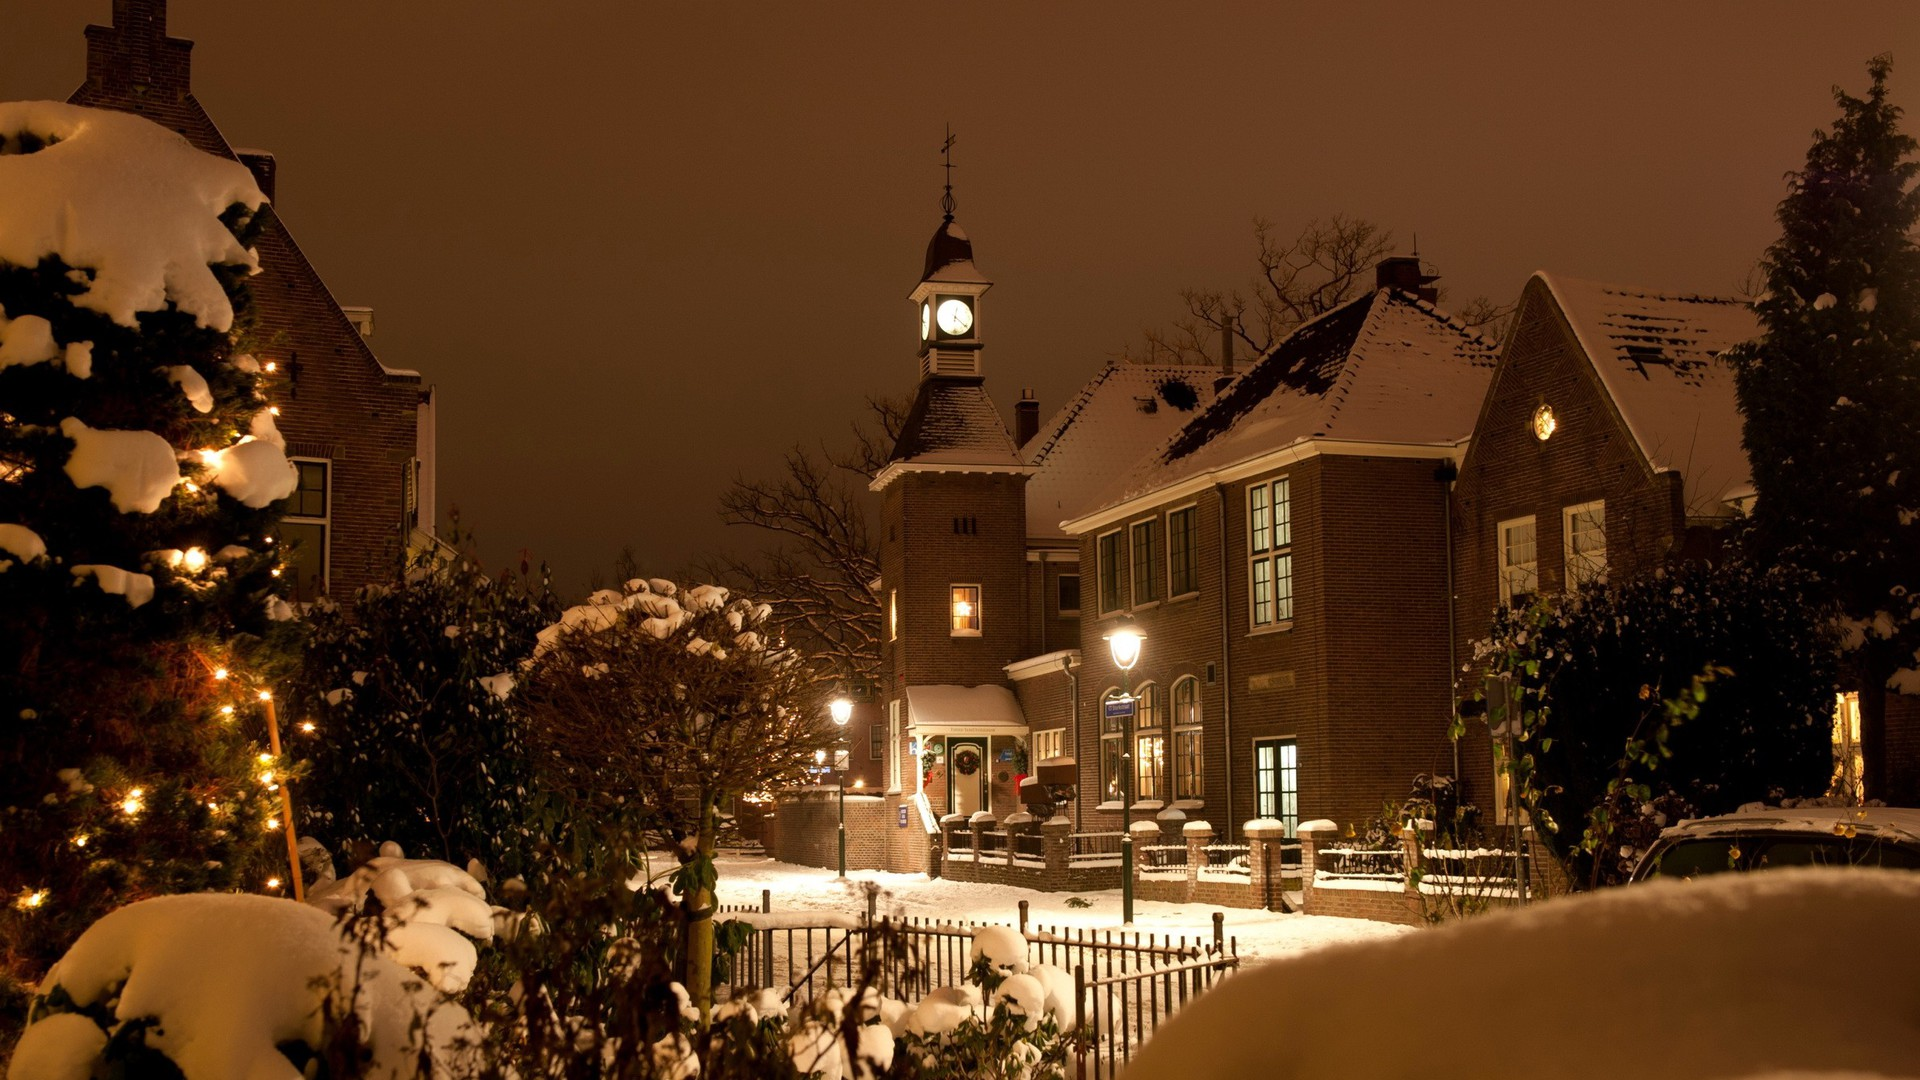 winter night in small town wallpaper